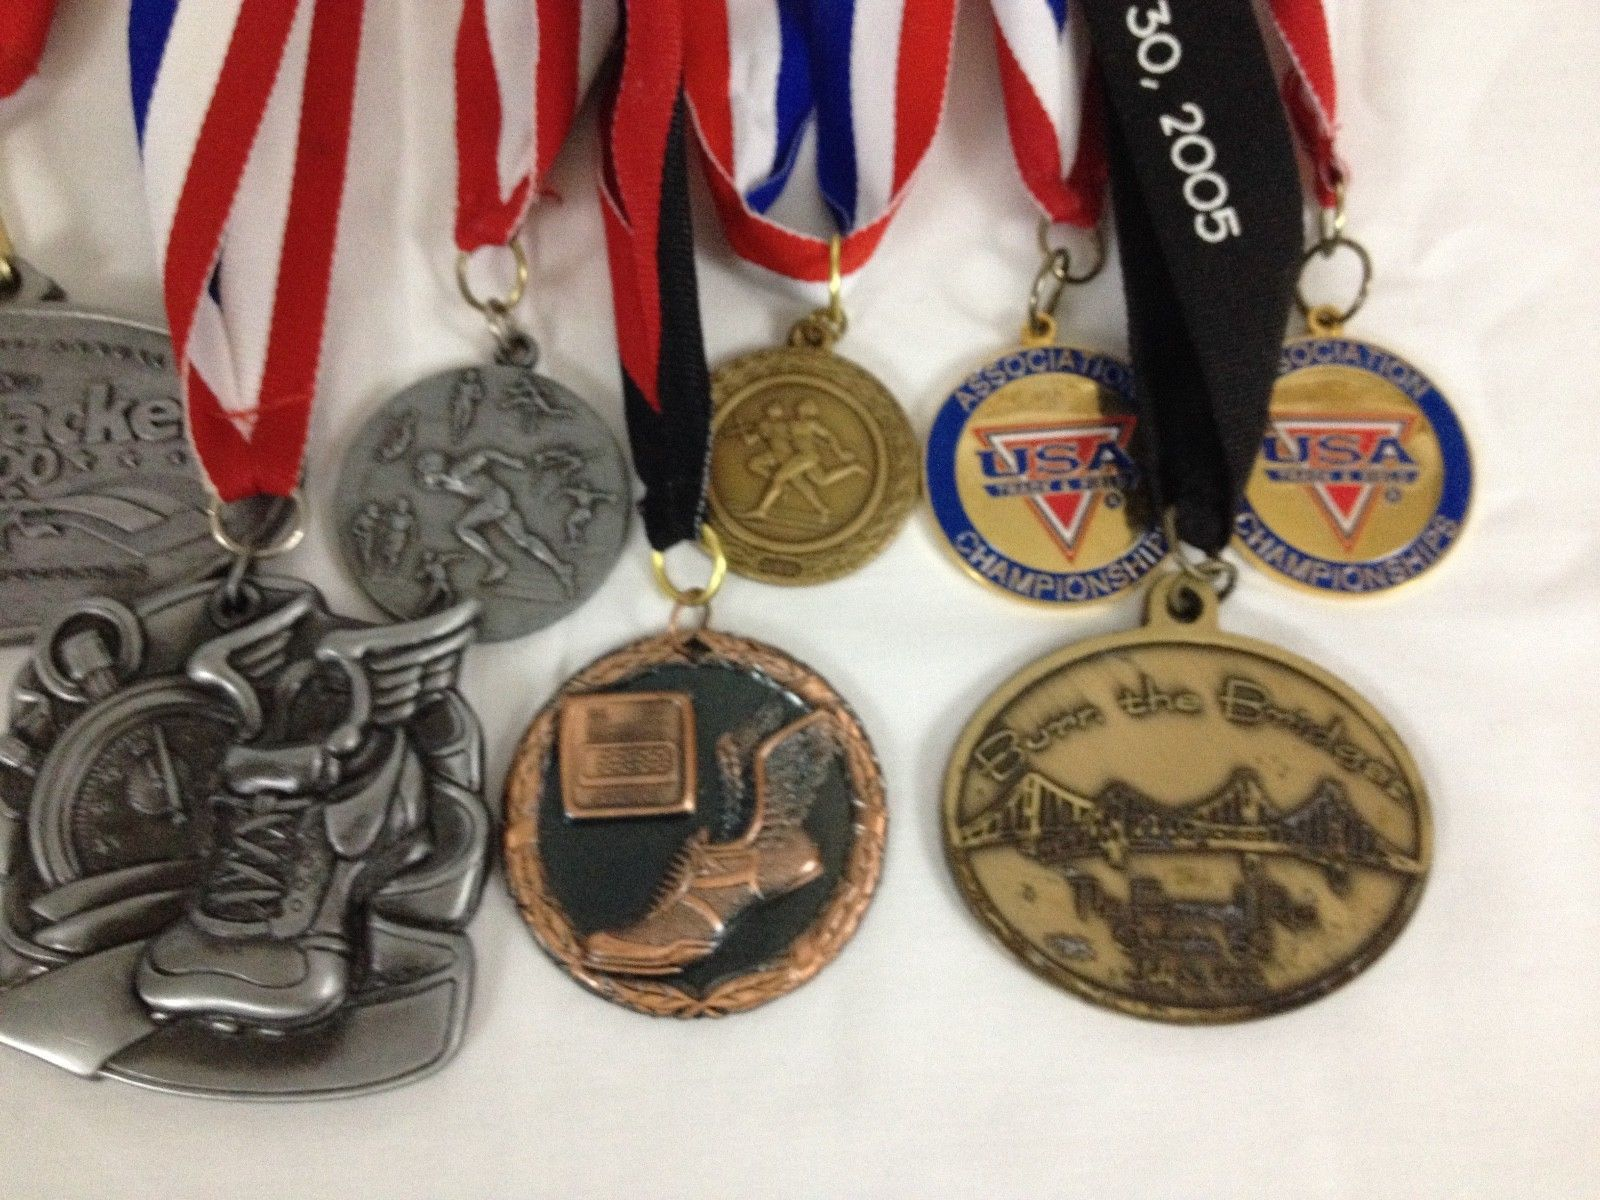 Lot of 14 Running Race Medals Medallions Awards From Various Events image 4